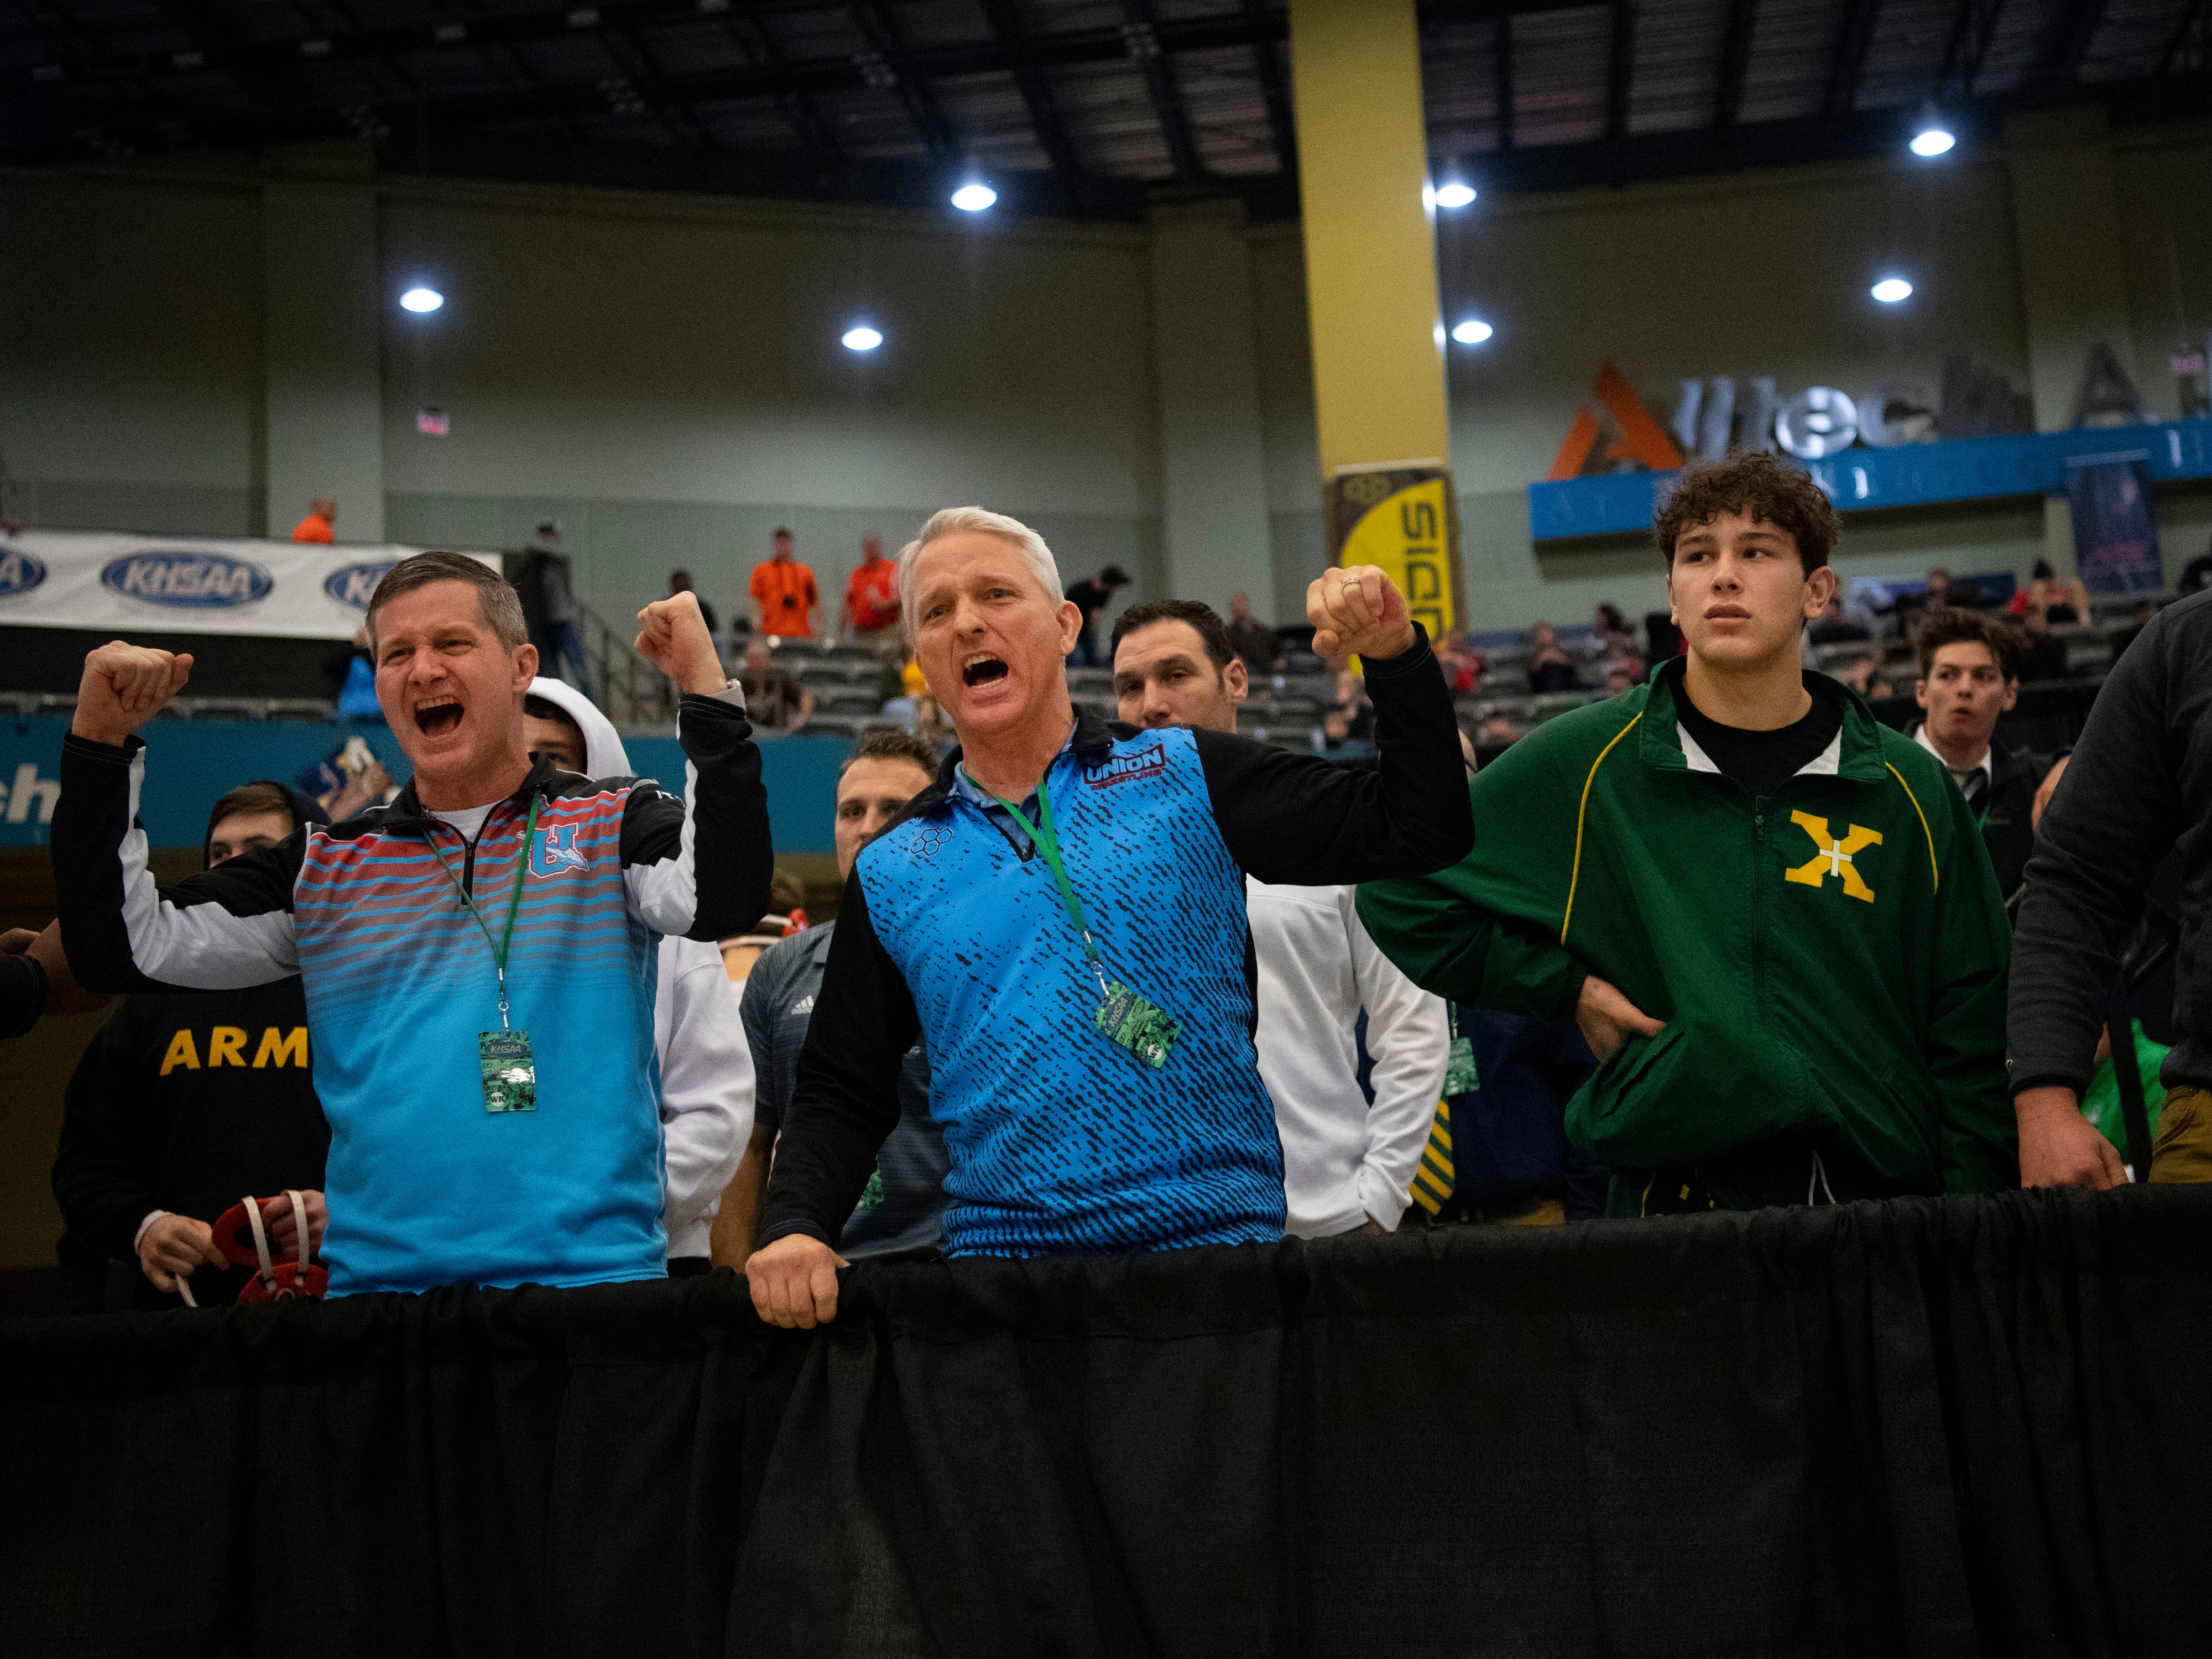 Union County coaches, from left, Brad Ervin and brother Robert Ervin, cheer on Trevor Pogue in his first consolation match in the 138 pound class at the KHSAA State Wrestling Championships at the Alltech Arena in Lexington, Ky., Saturday afternoon. Pogue finished with a fourth place award.